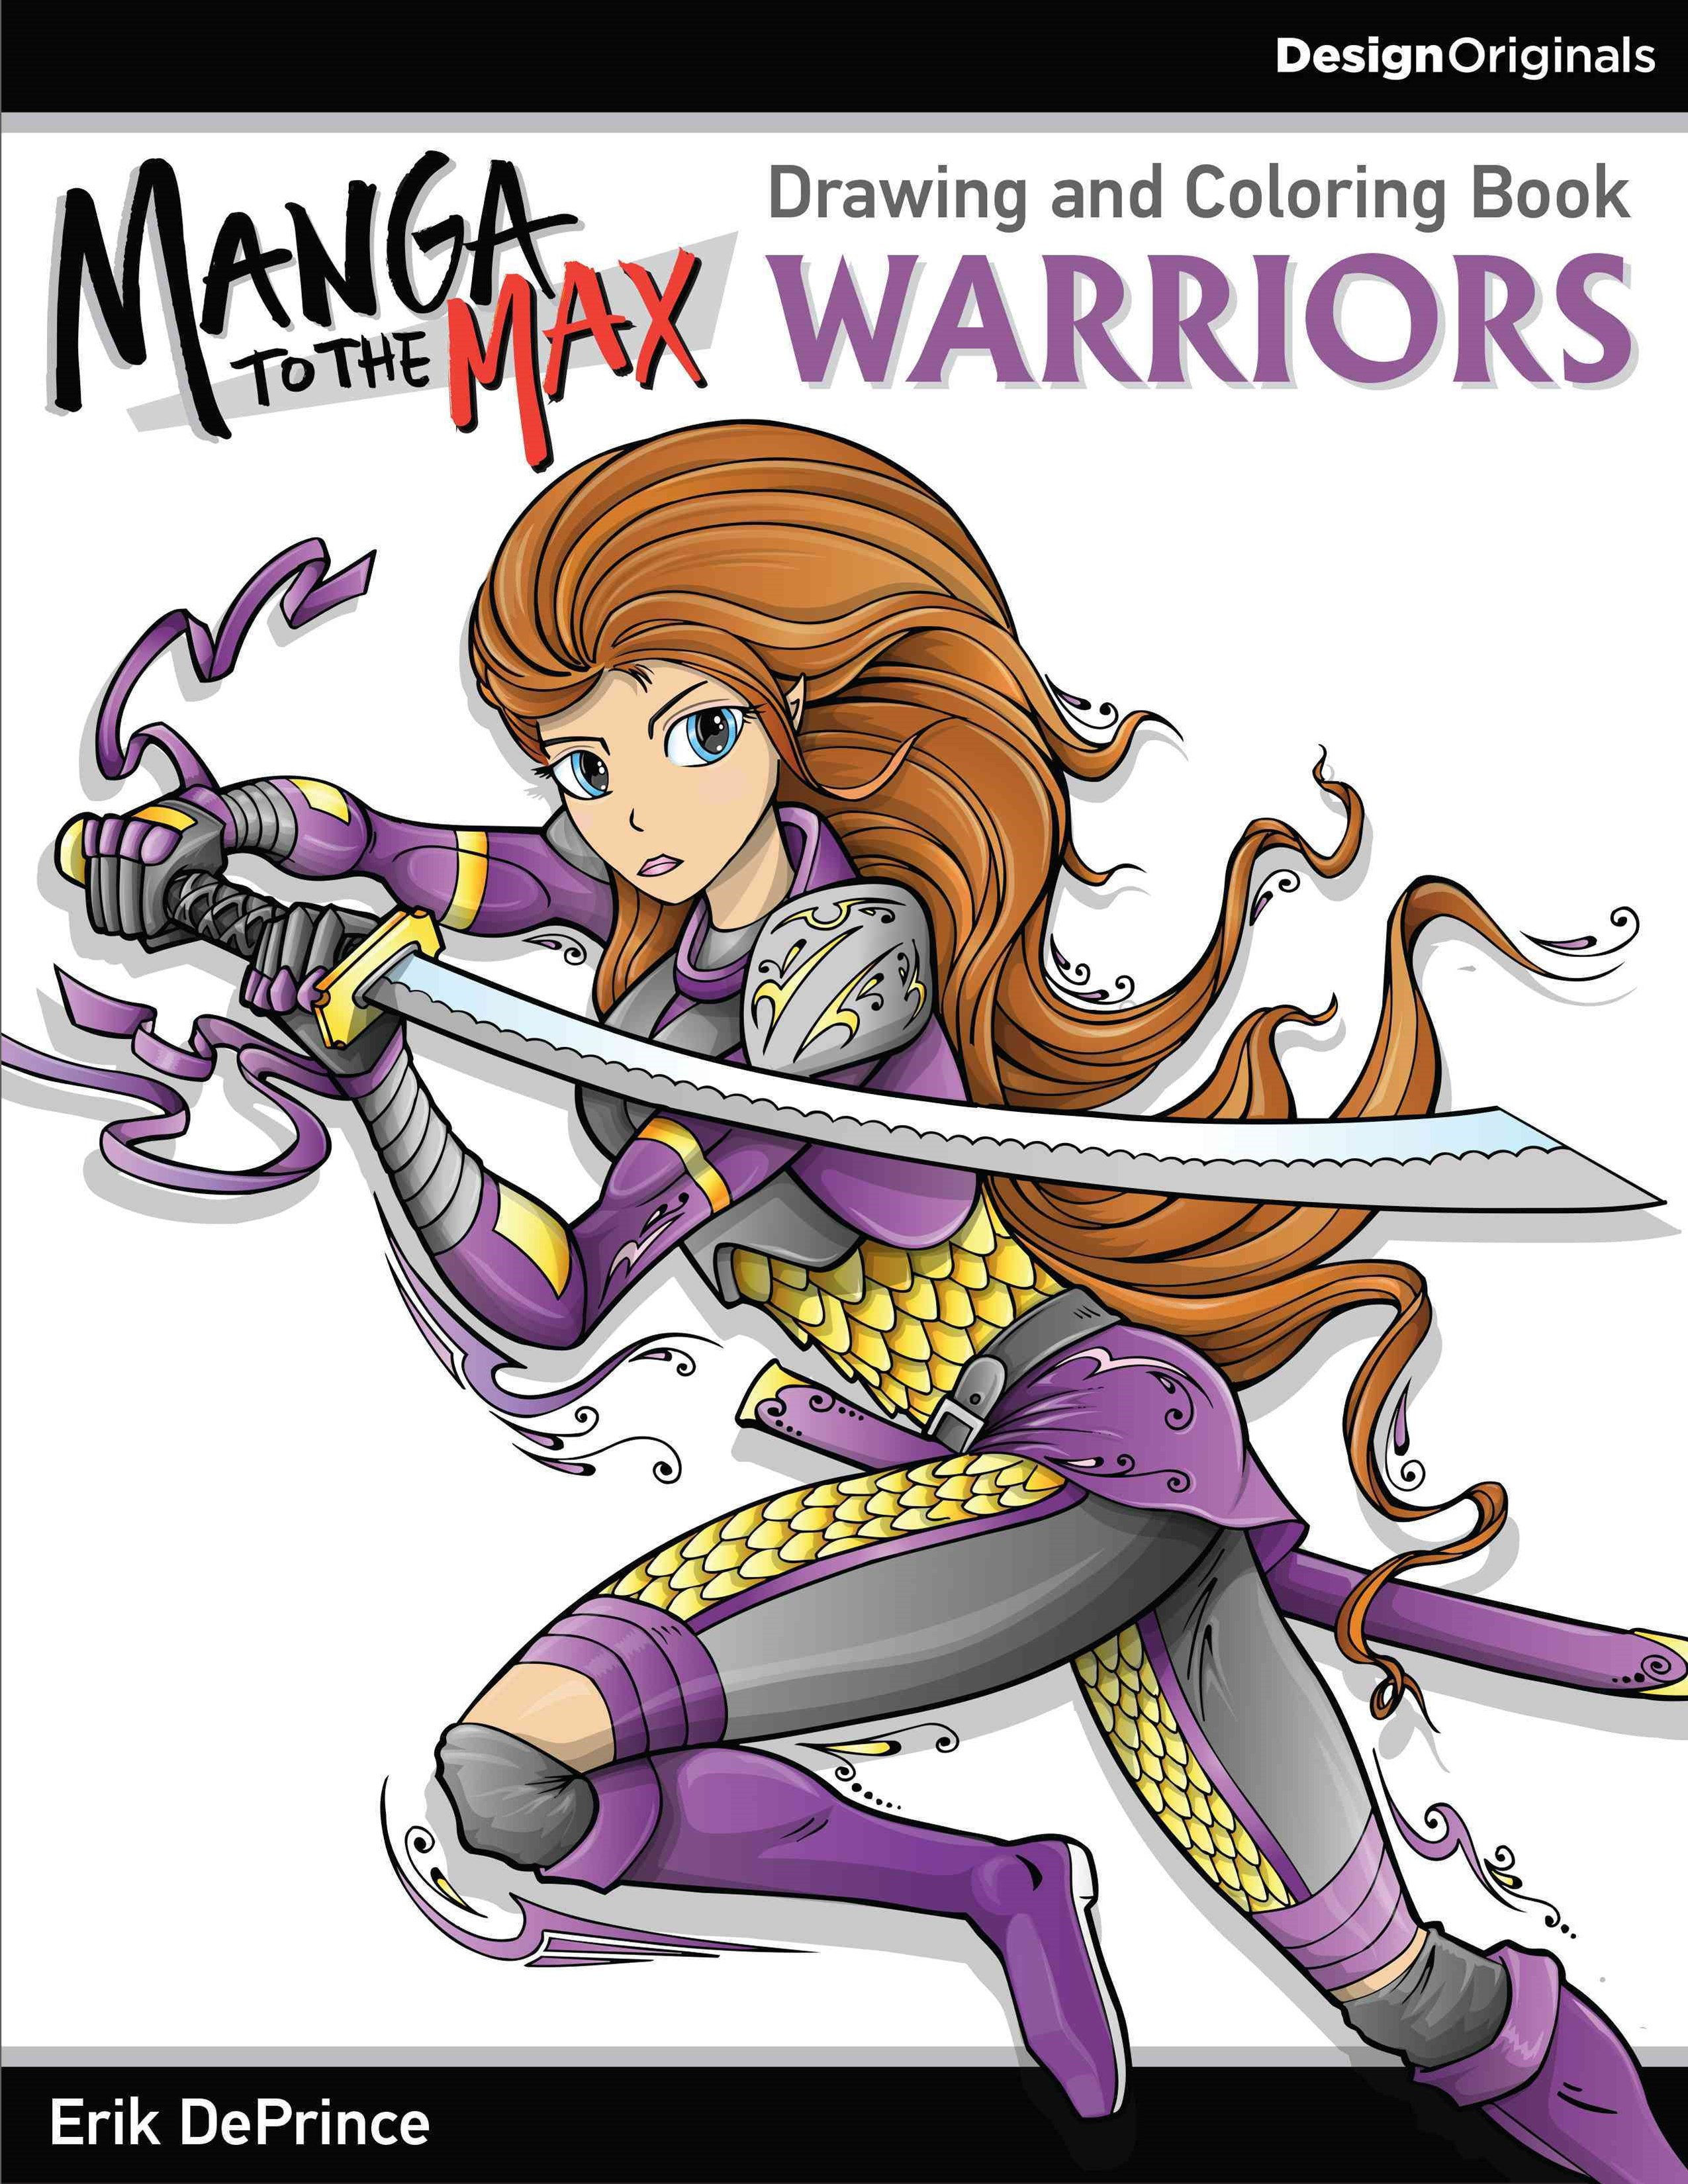 Manga to the Max Warriors